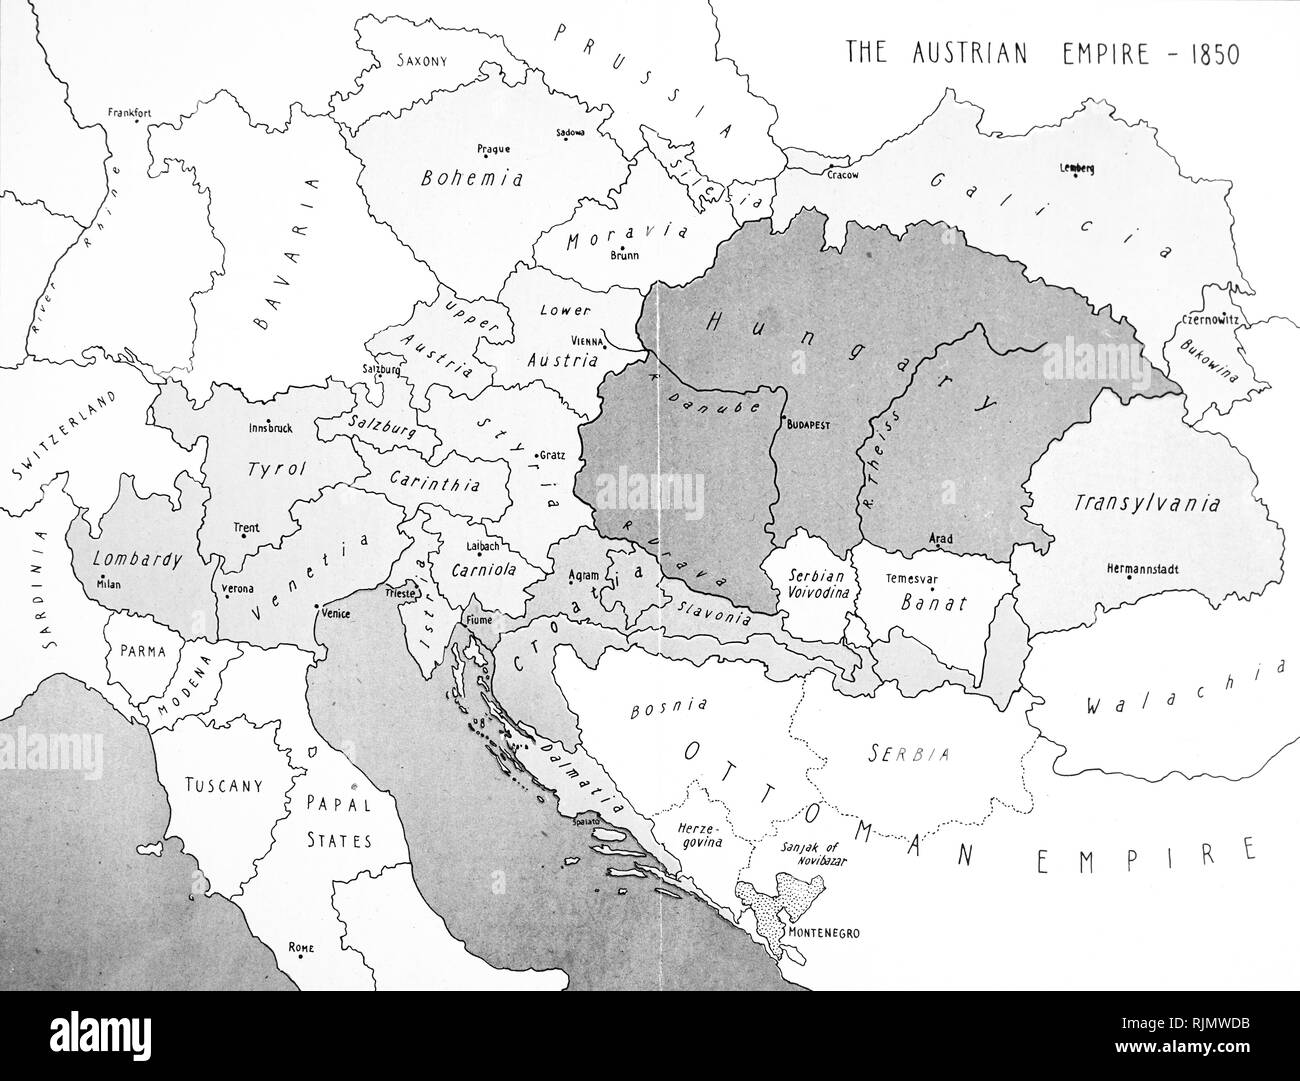 Map of the Austrian (Austro-Hungarian), Empire. 1850 - Stock Image